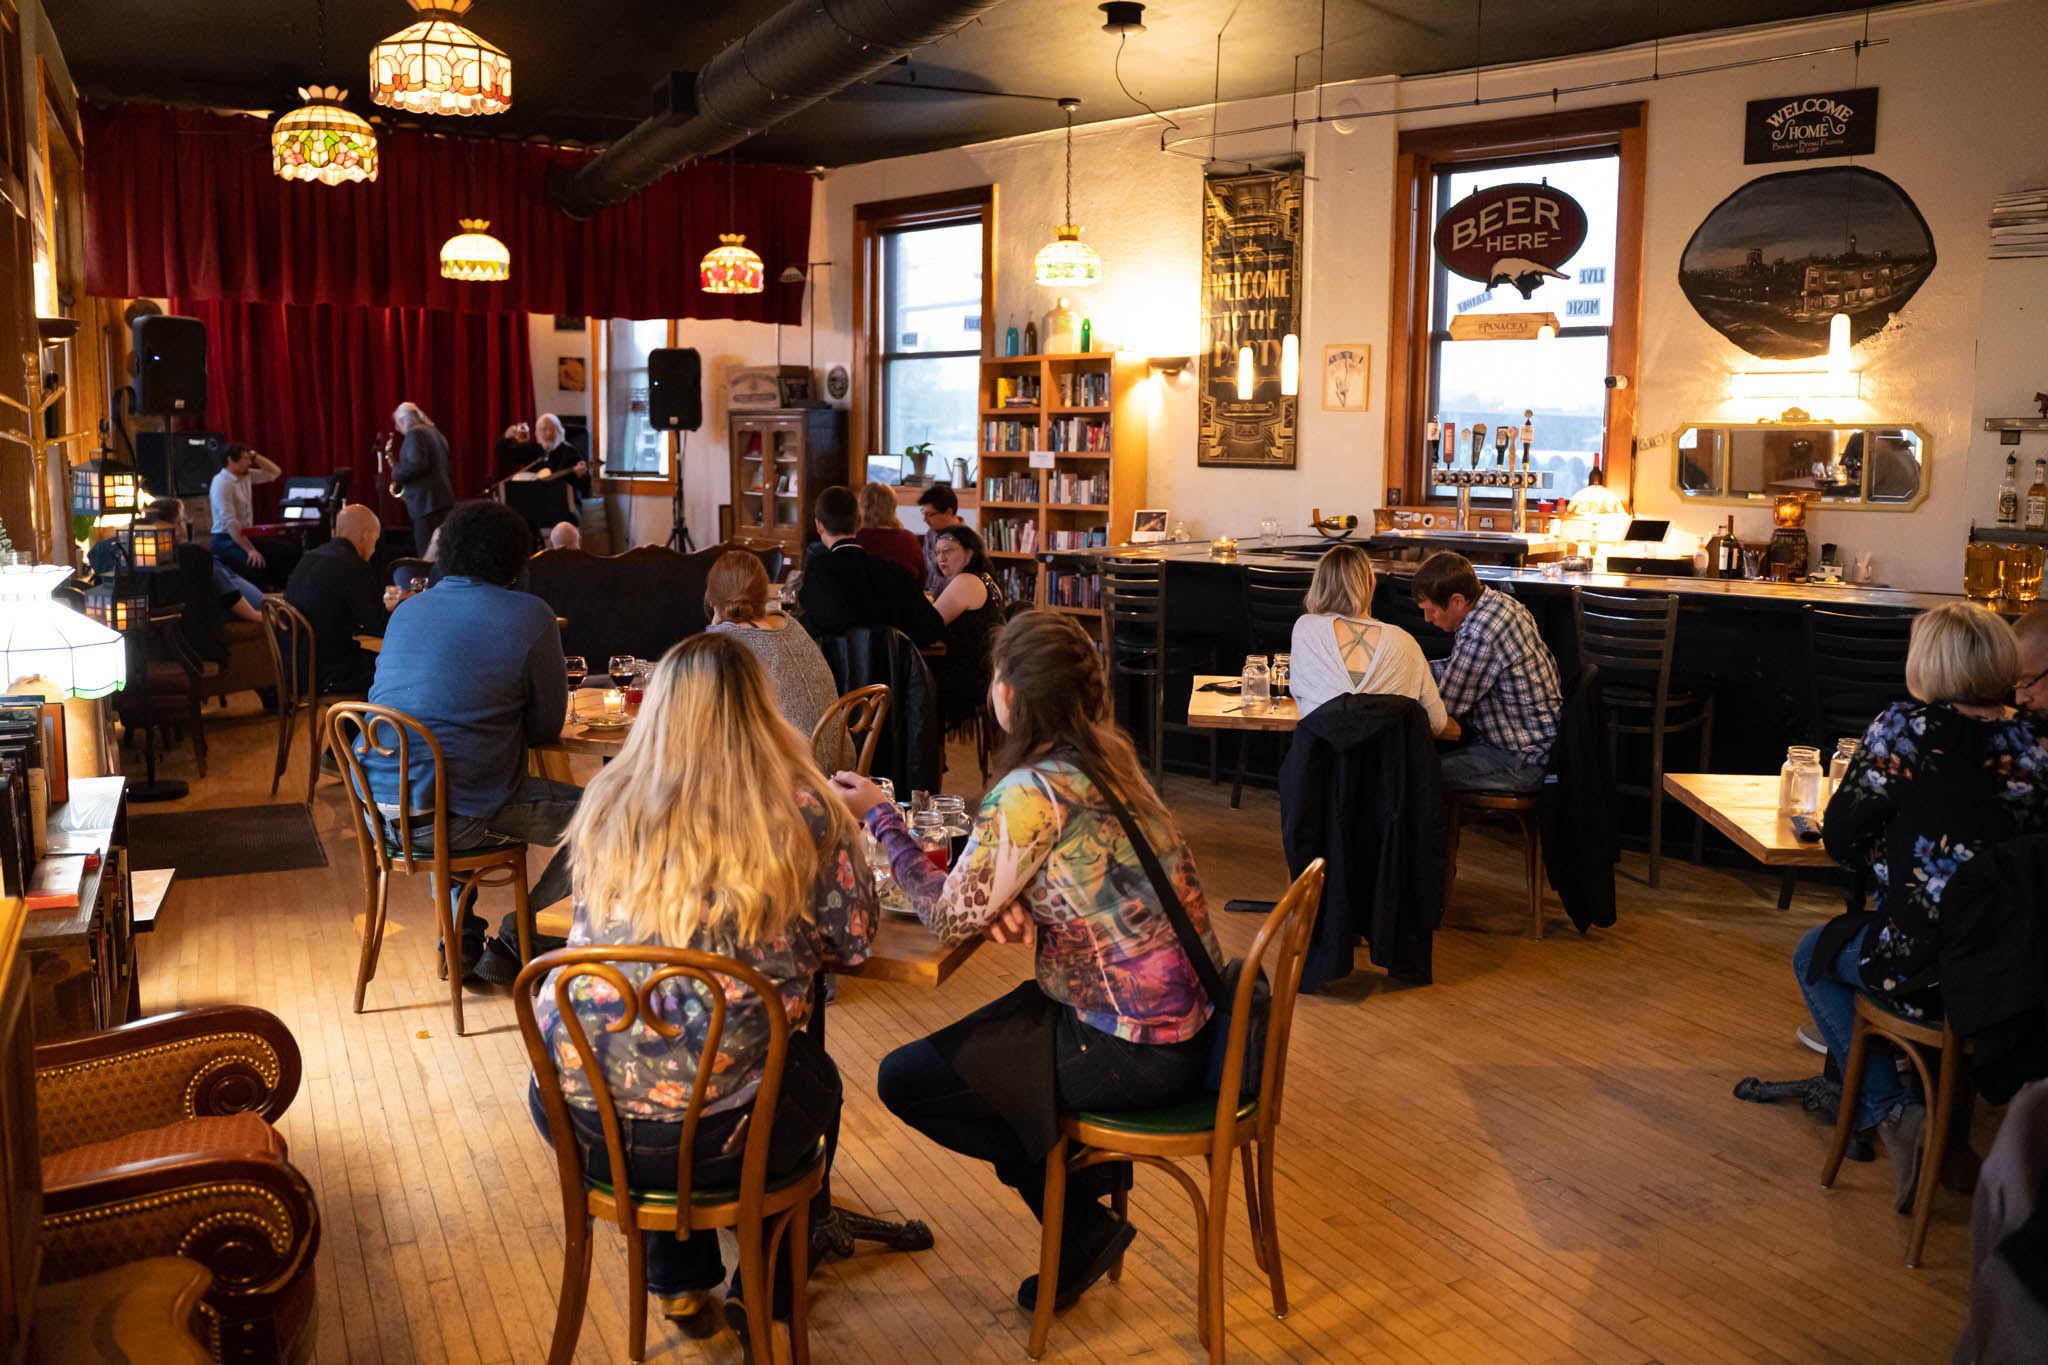 Customers in the restaurant&  bar downtown sioux falls